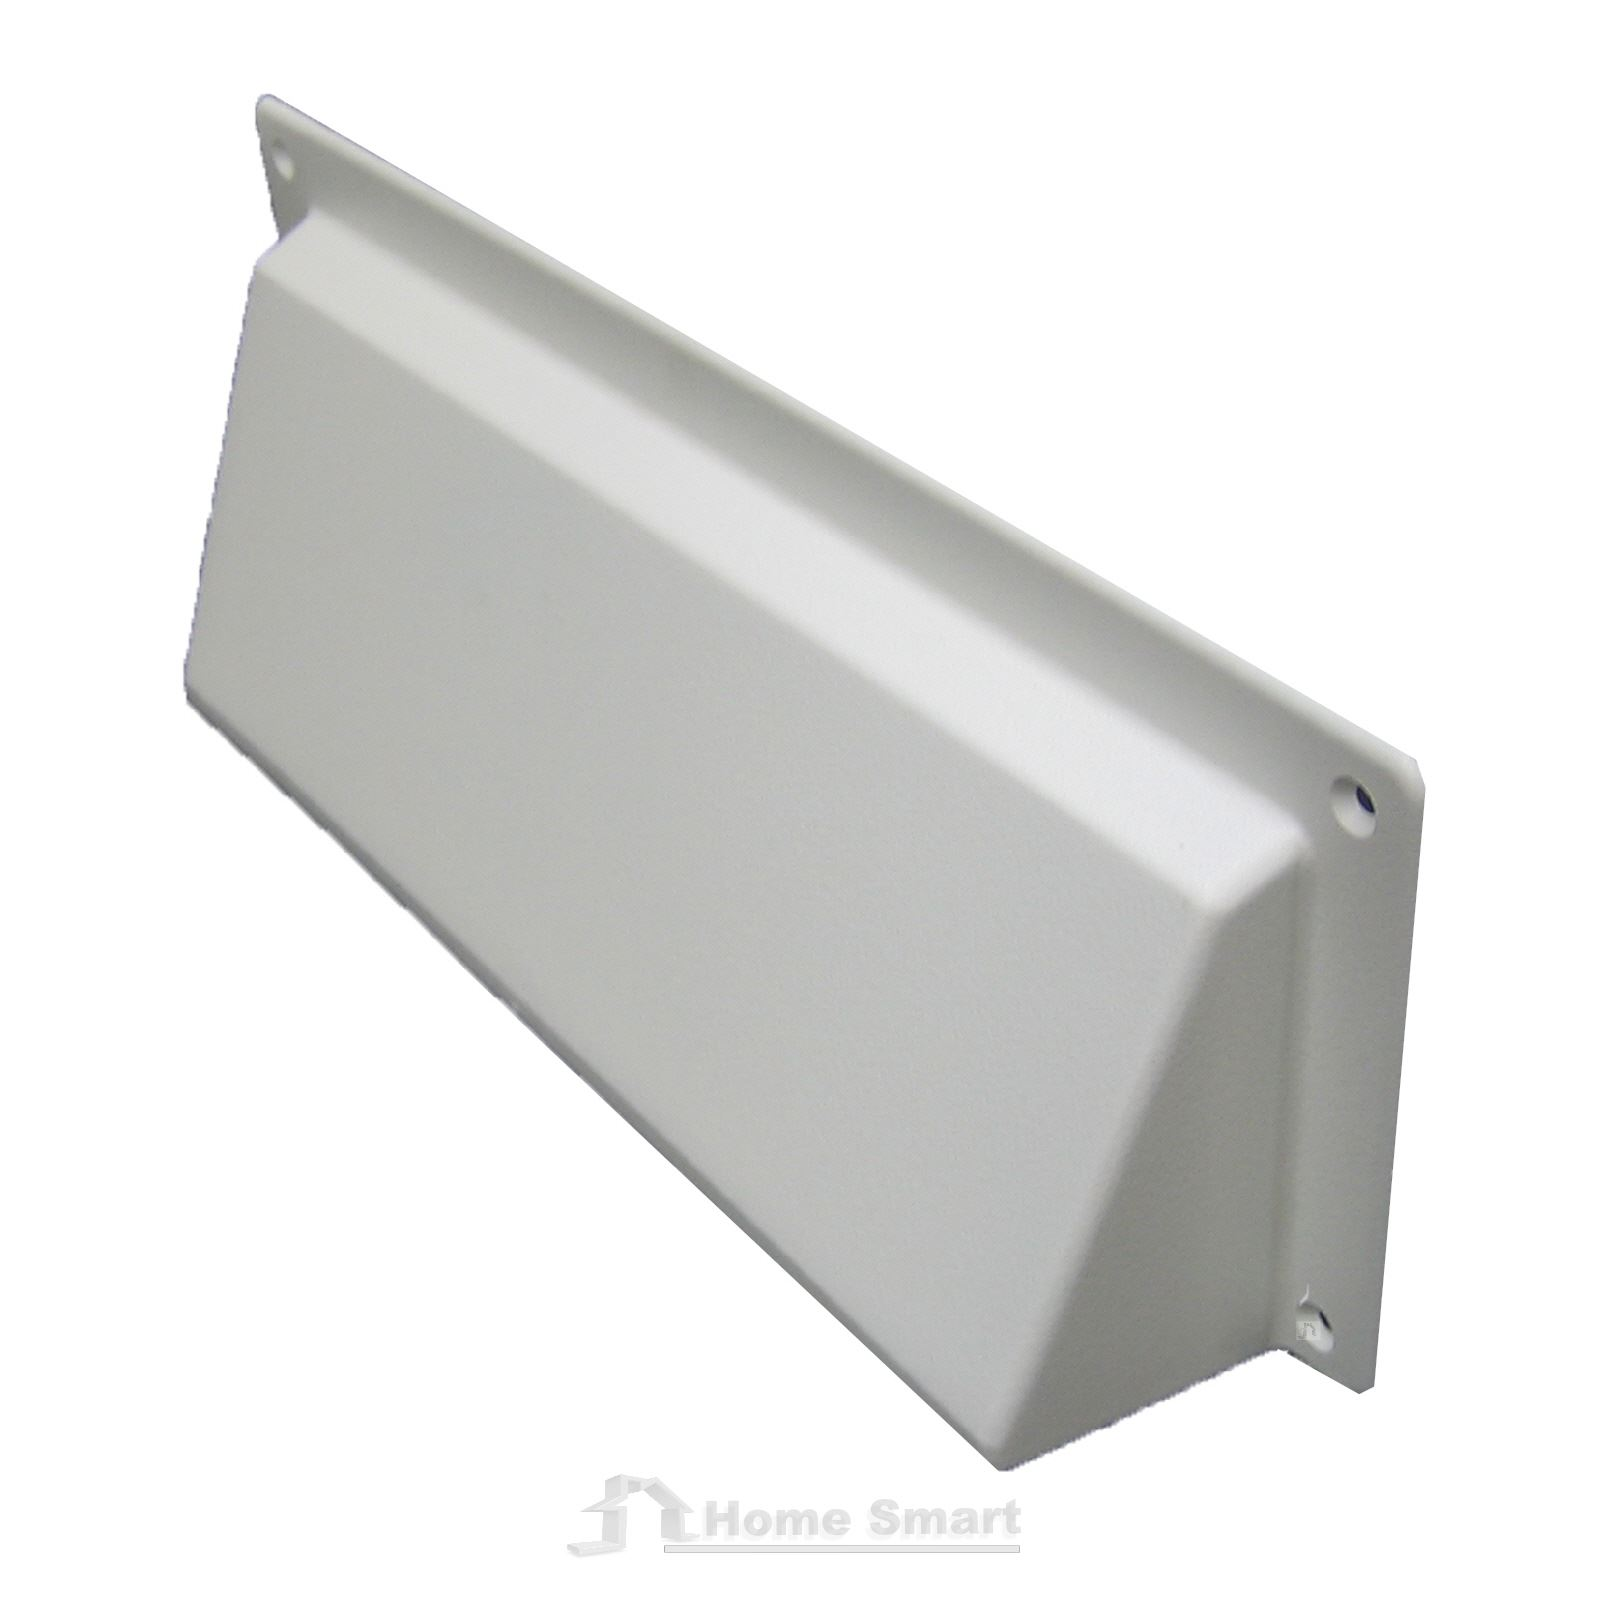 Quot white hooded cowl vent cover for air bricks